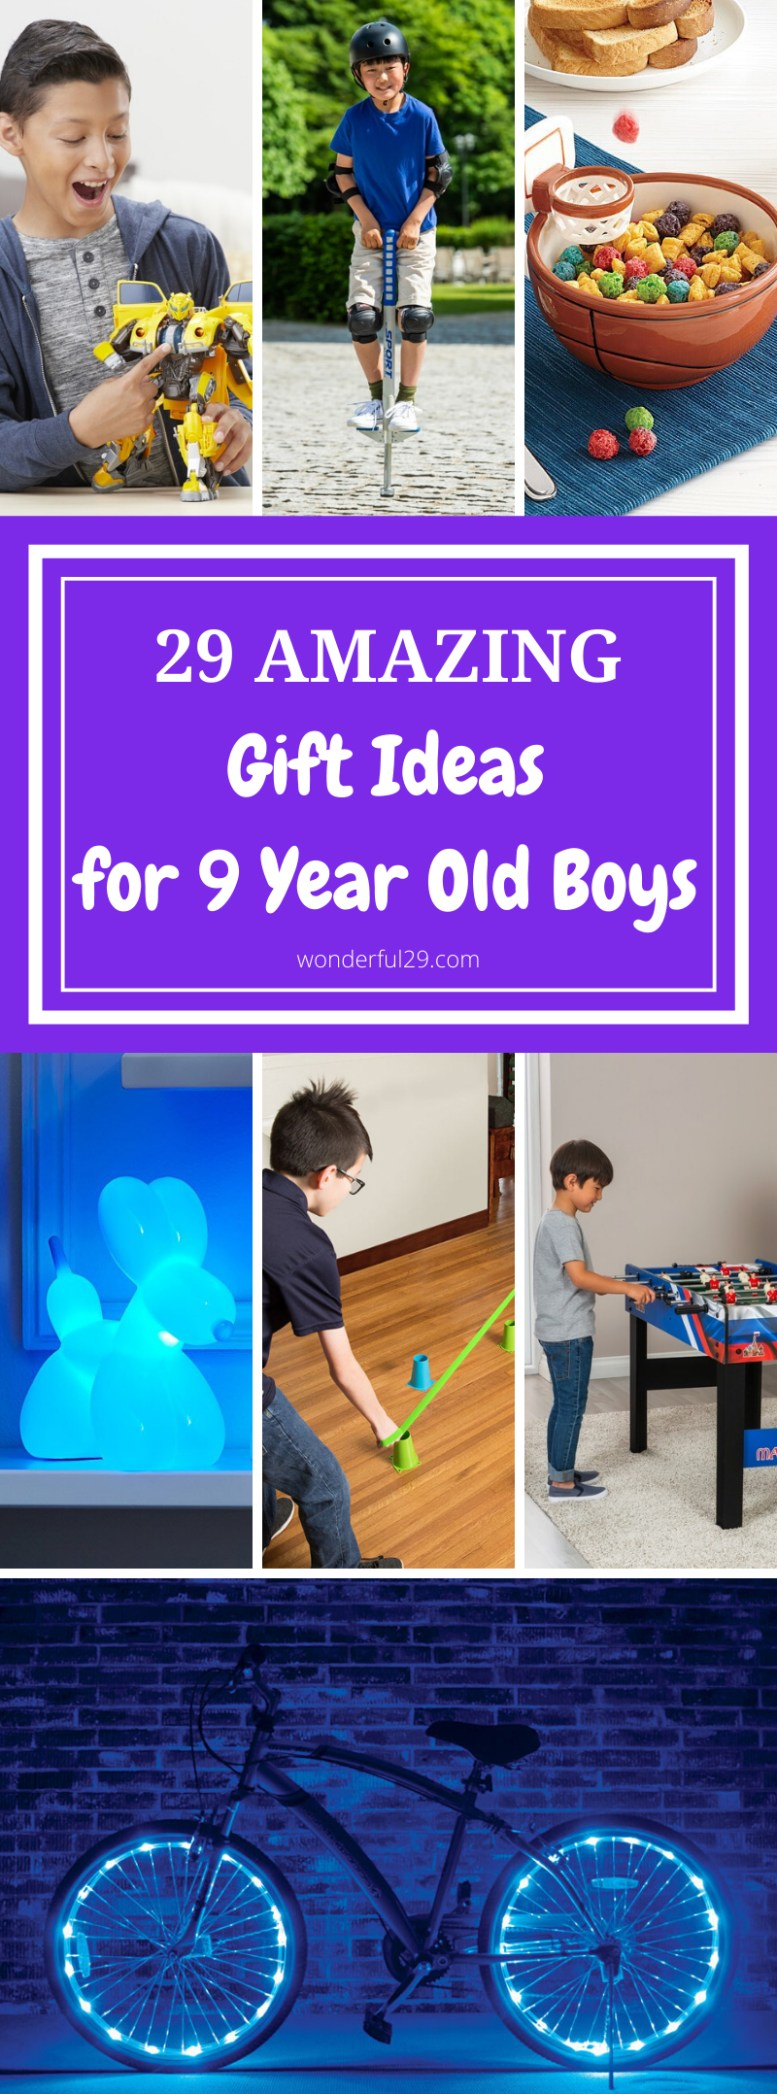 Gifts for 9 Years Old Boys